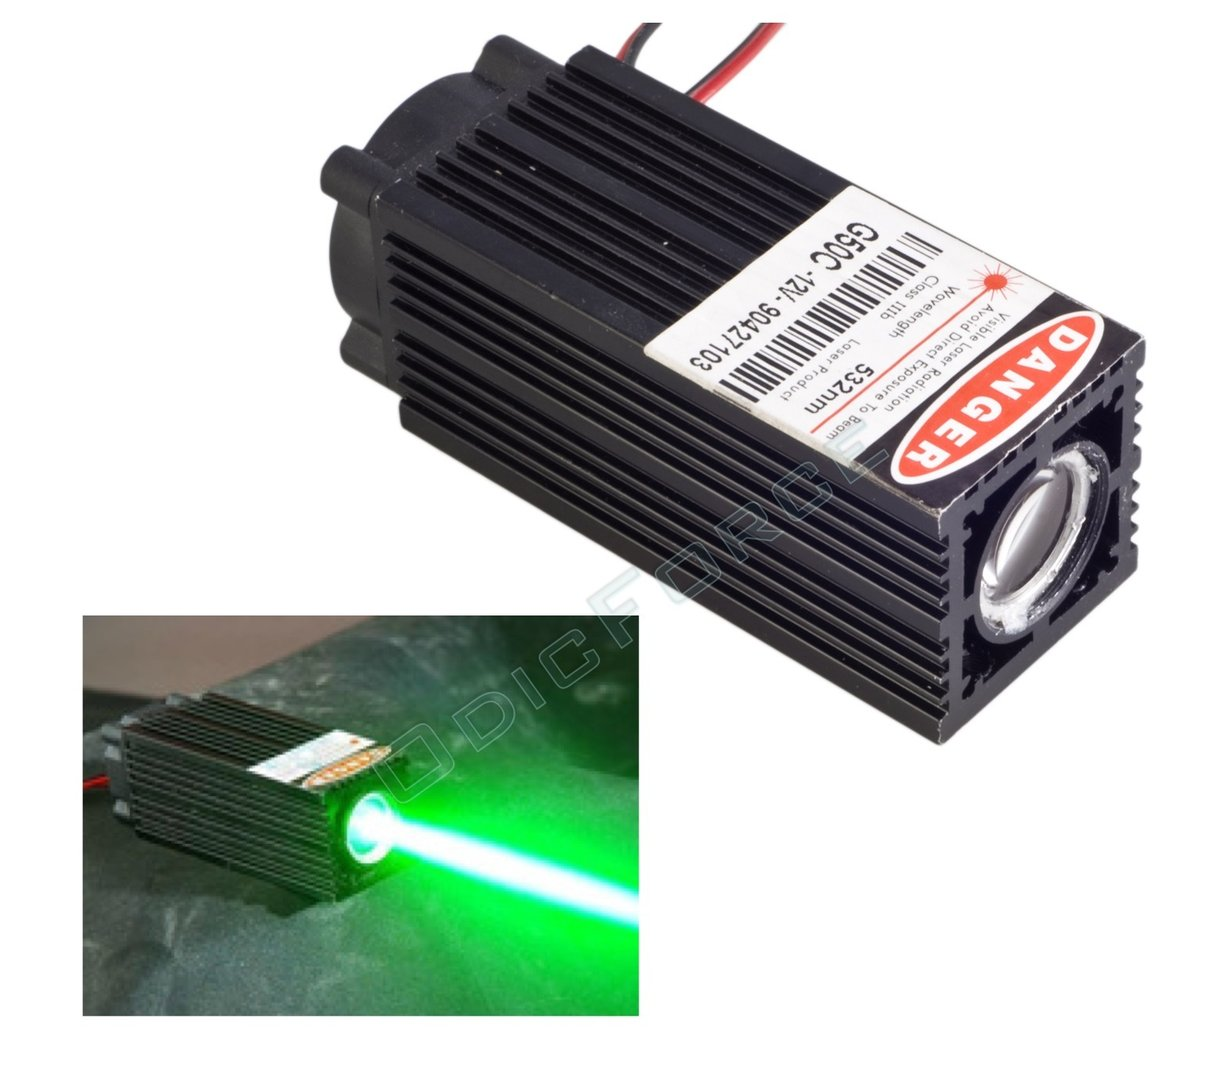 50-80mW Wide Beam (15mm)  532nm Green Laser Module with TTL Modulation and Fan Cooled Laser Head (12V) (G50C)